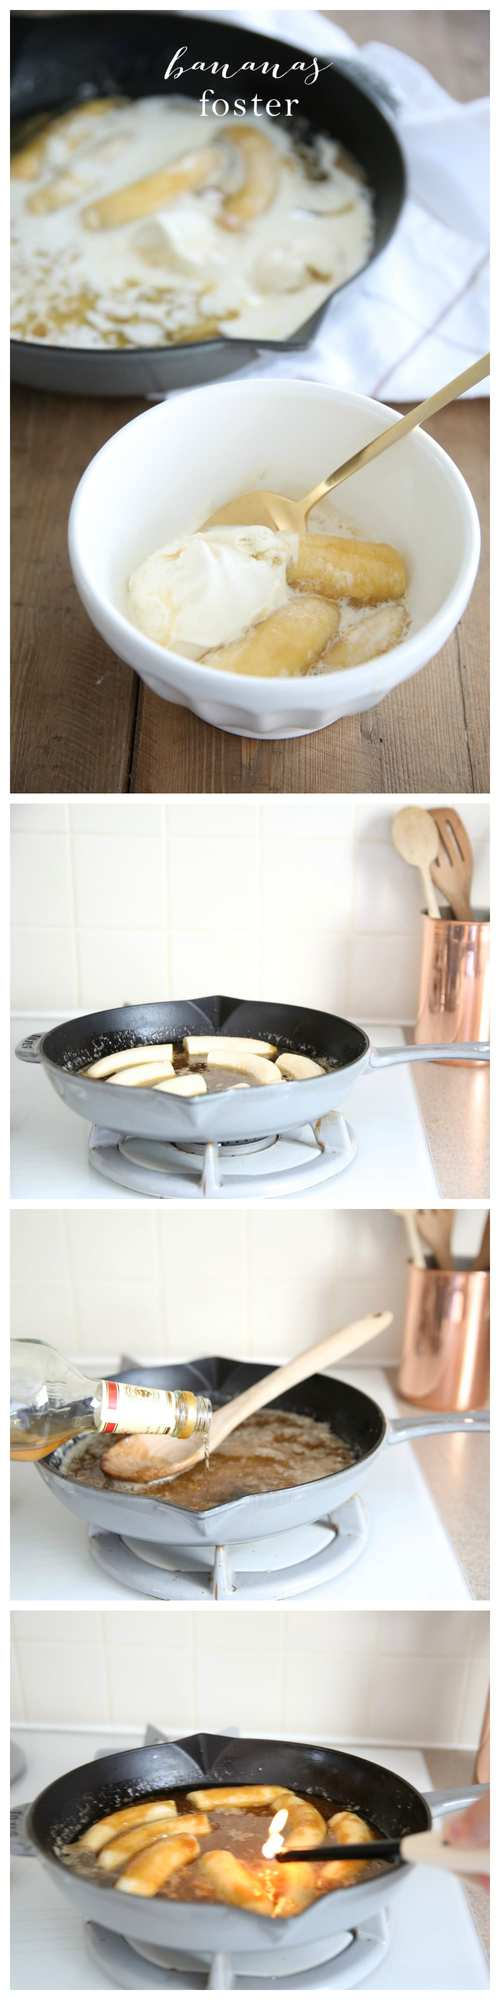 Step by step recipe for Bananas Foster